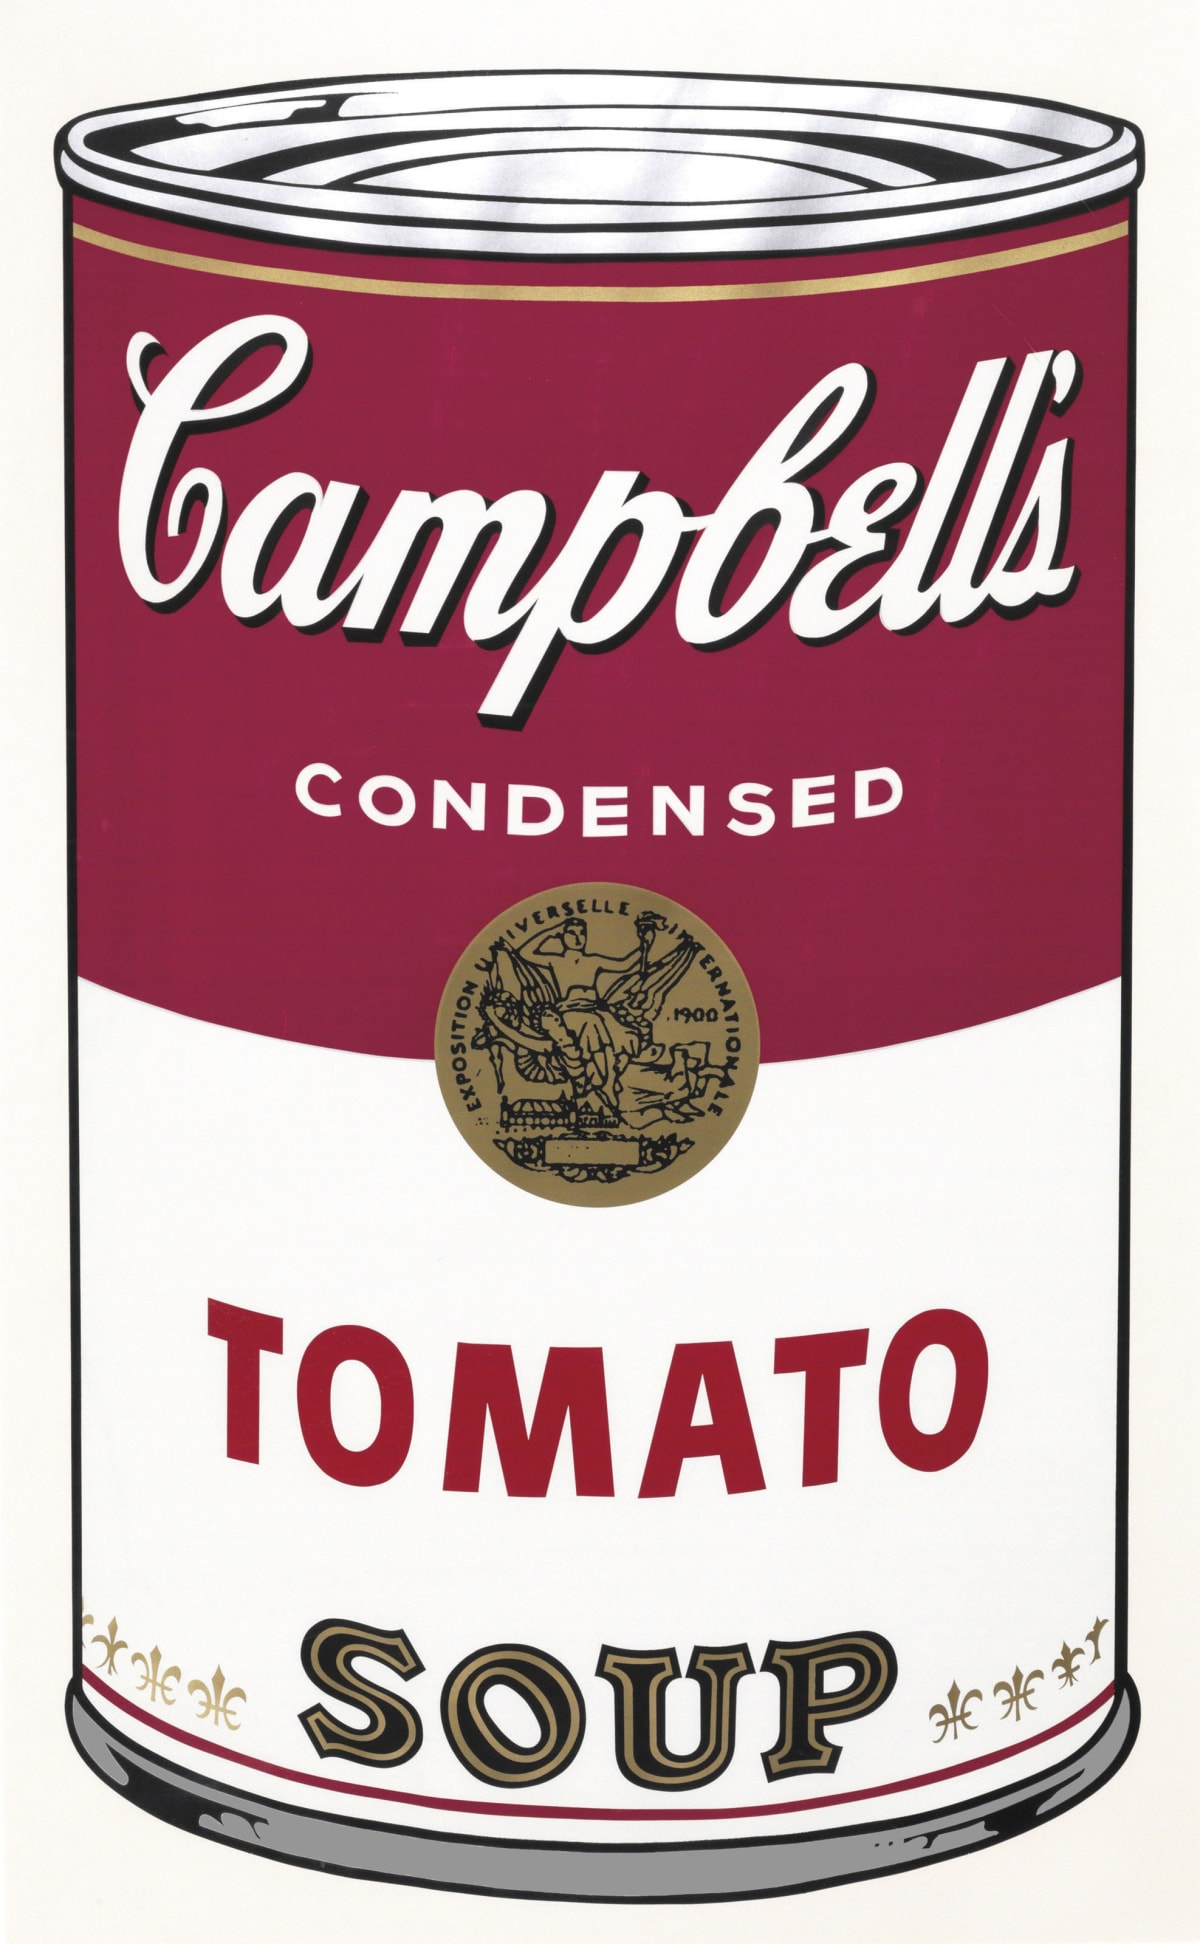 Campbell's I, Tomato Soup, 1968 by Andy Warhol, Screenprint from an edition of 250 at Coskun Fine Art